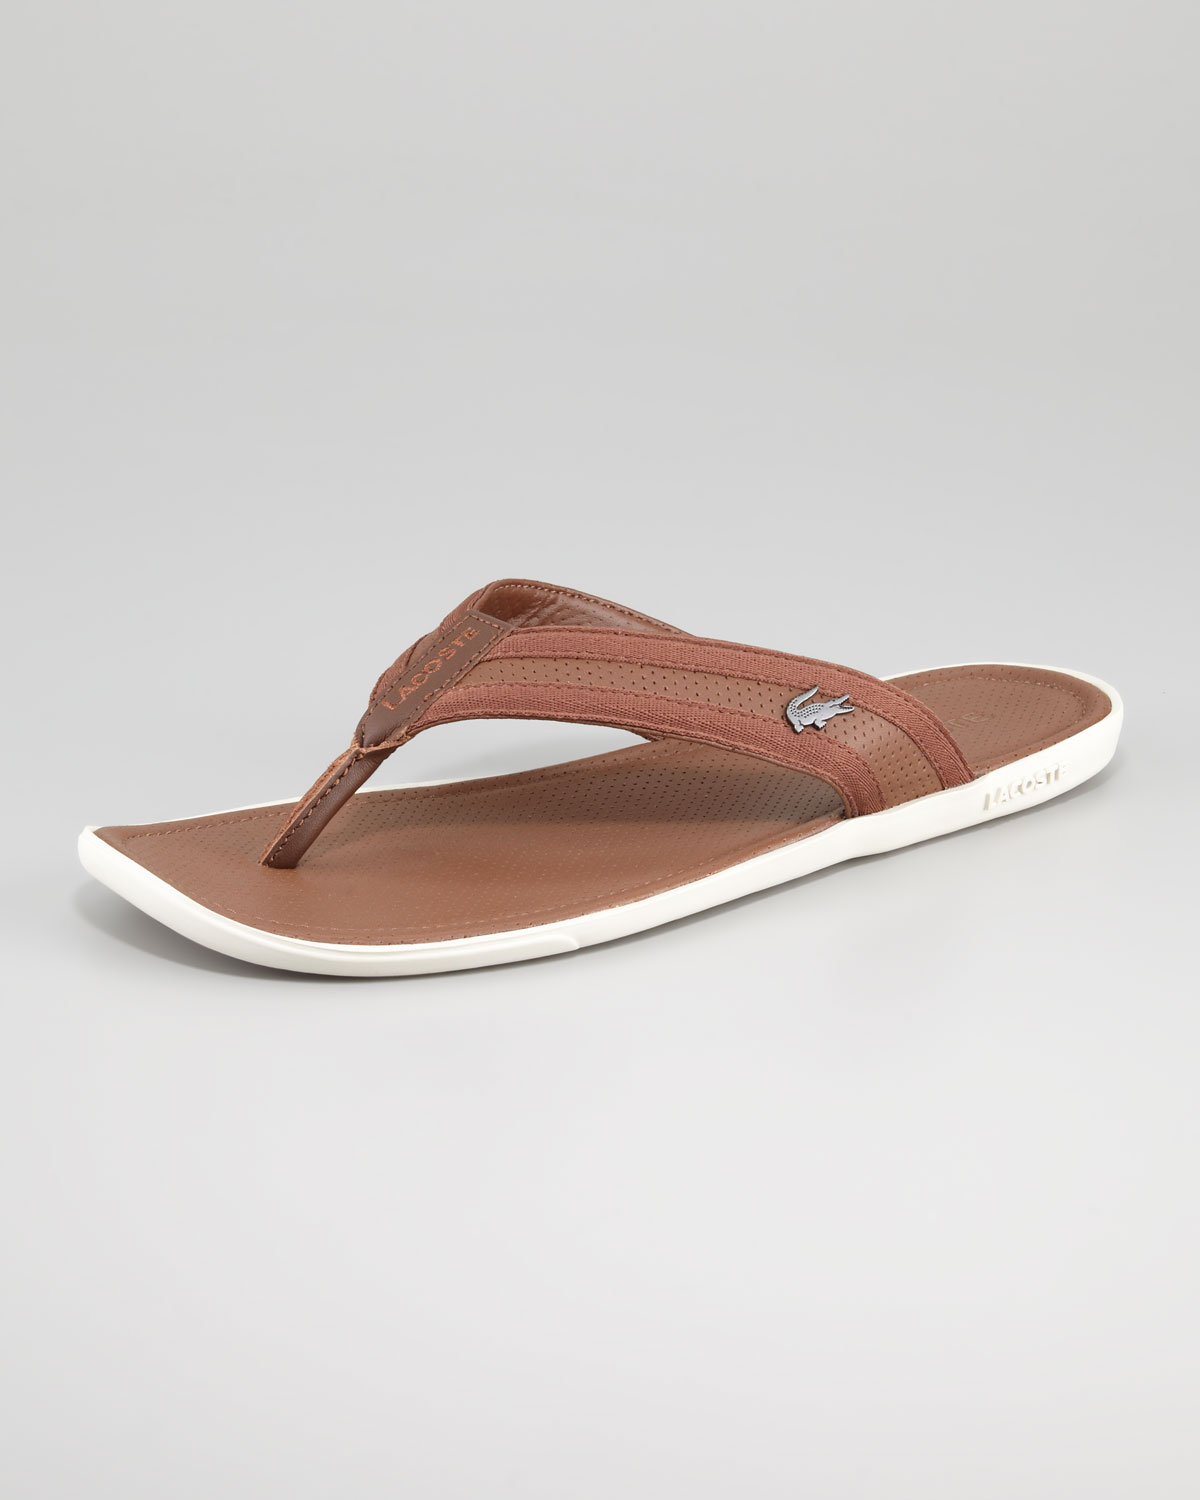 87a695c46 Lacoste Carros Leather Thong Sandal in Beige for Men (tan)